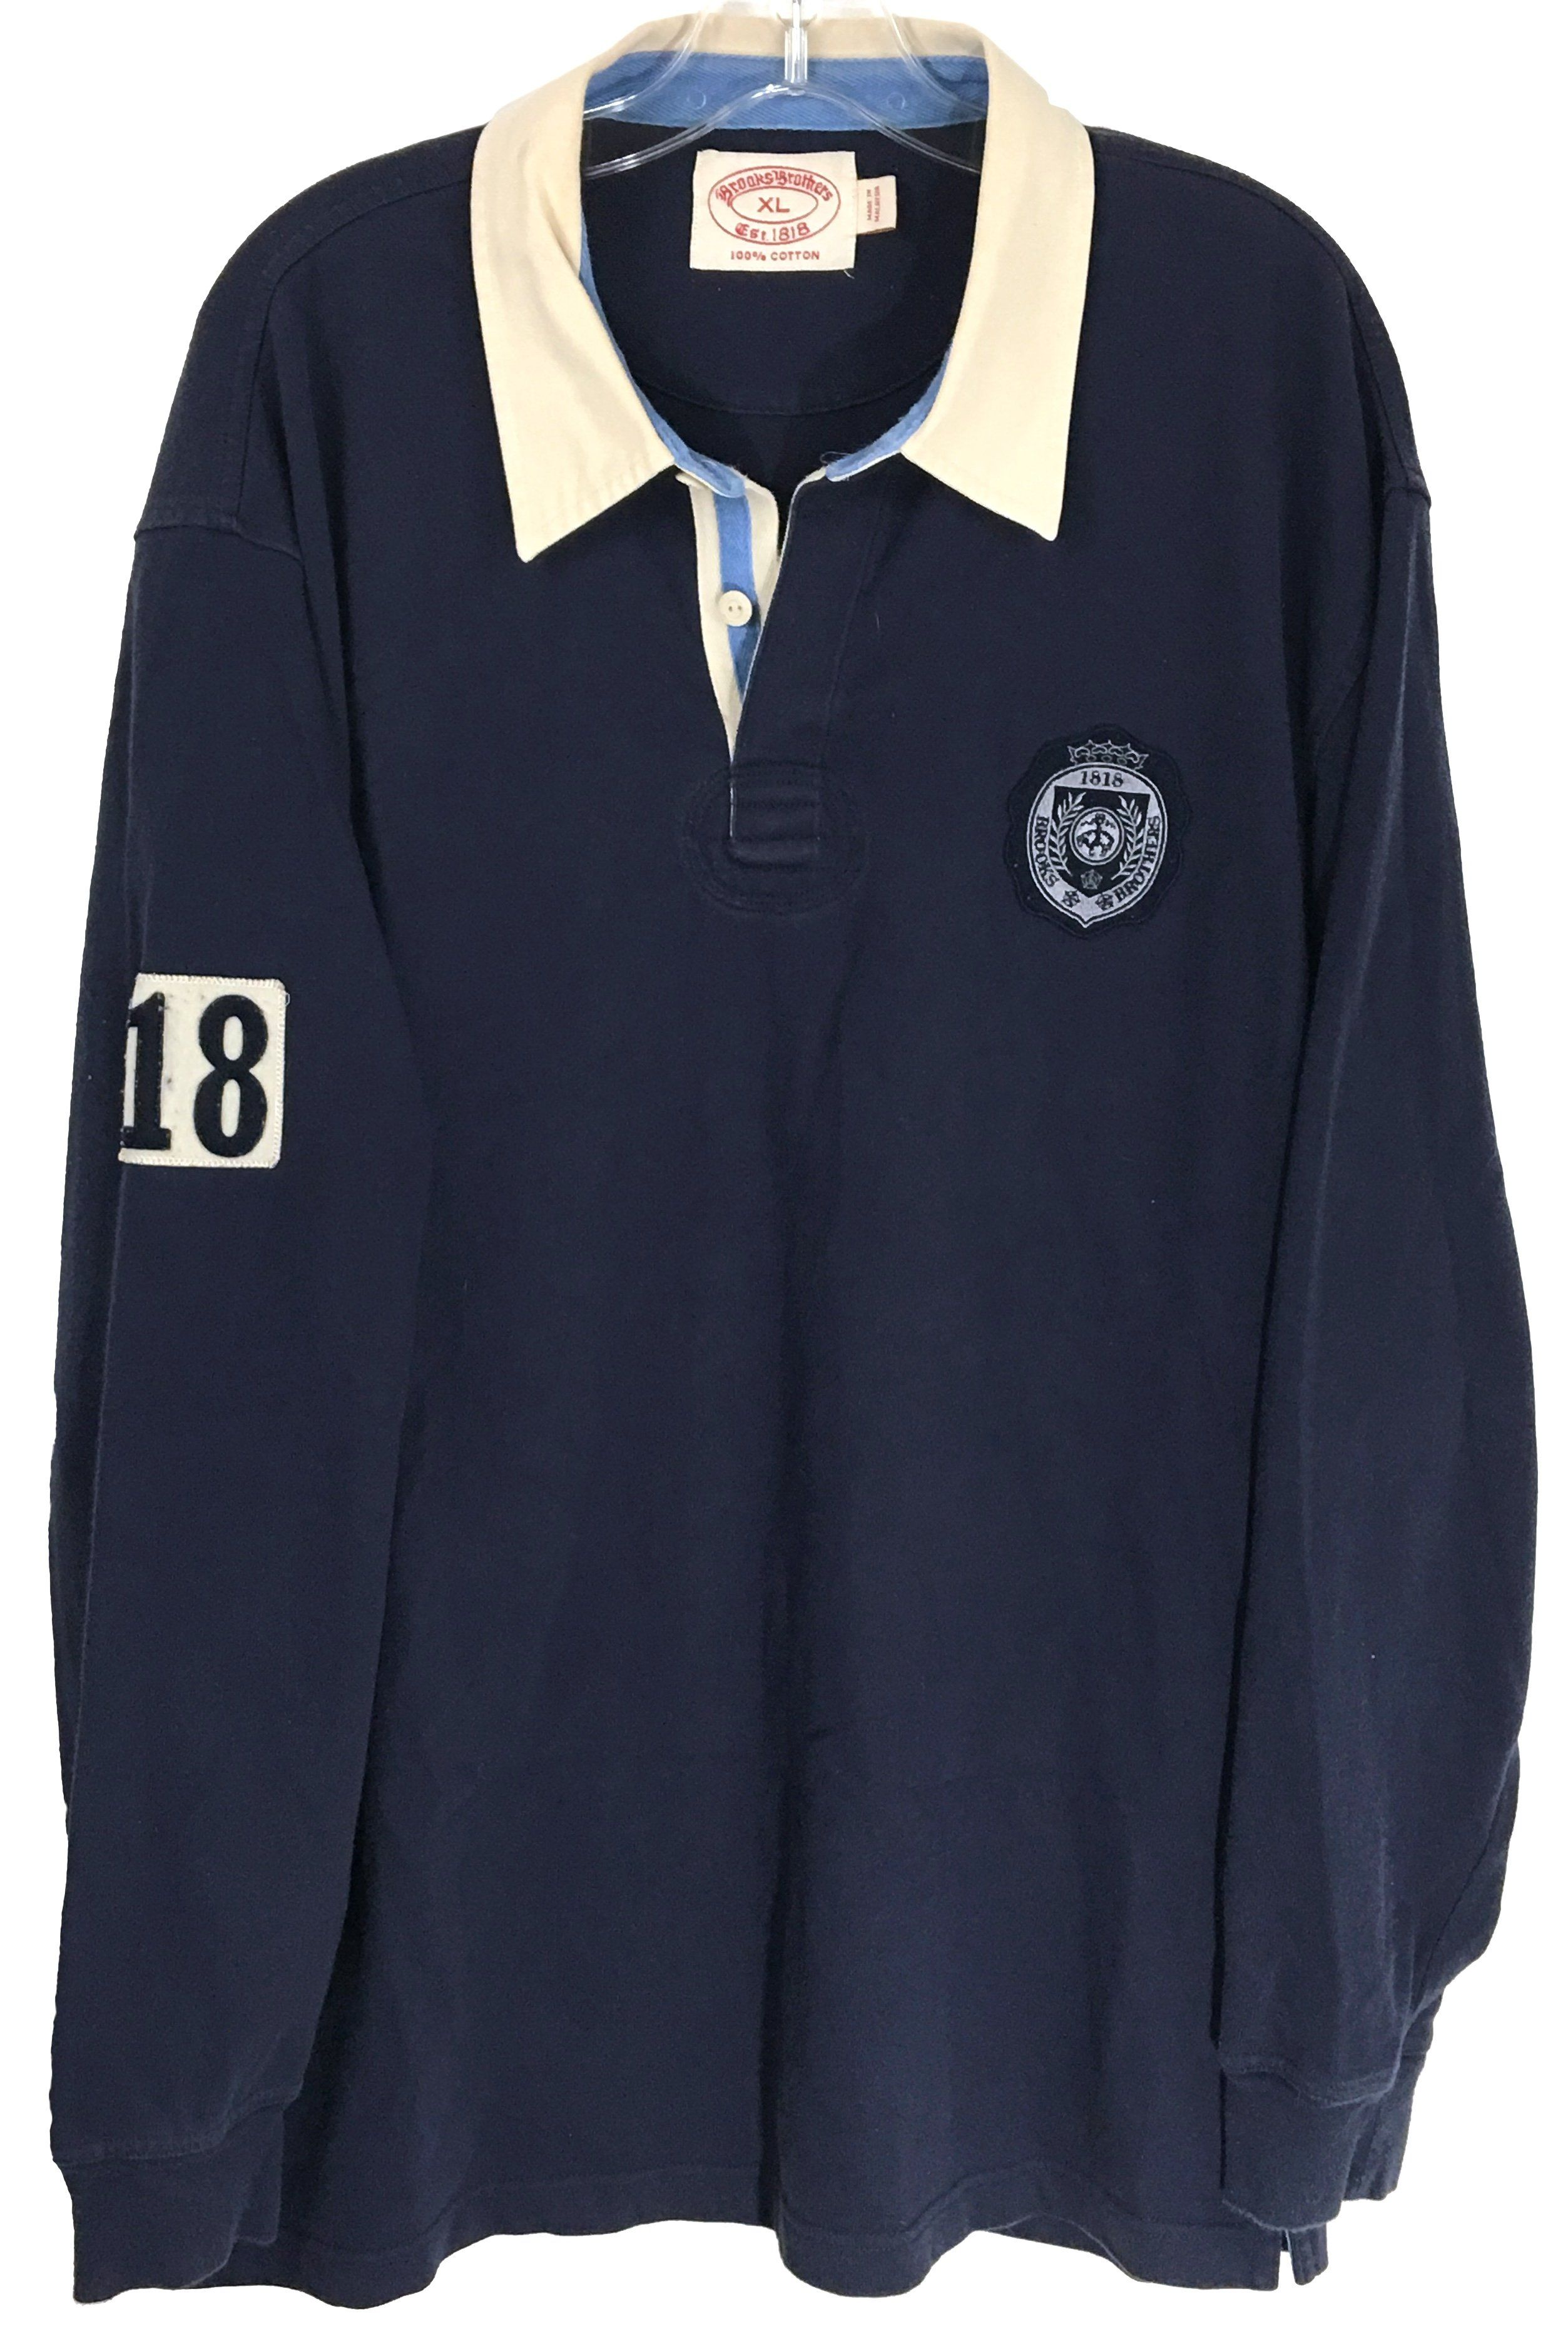 978f62c5 Brooks Brothers Vintage Navy Blue Long Sleeve Cotton Rugby Polo Shirt Mens  XL - Preowned #BrooksBrothers #PreppyFashion #MensPolo #Rugby